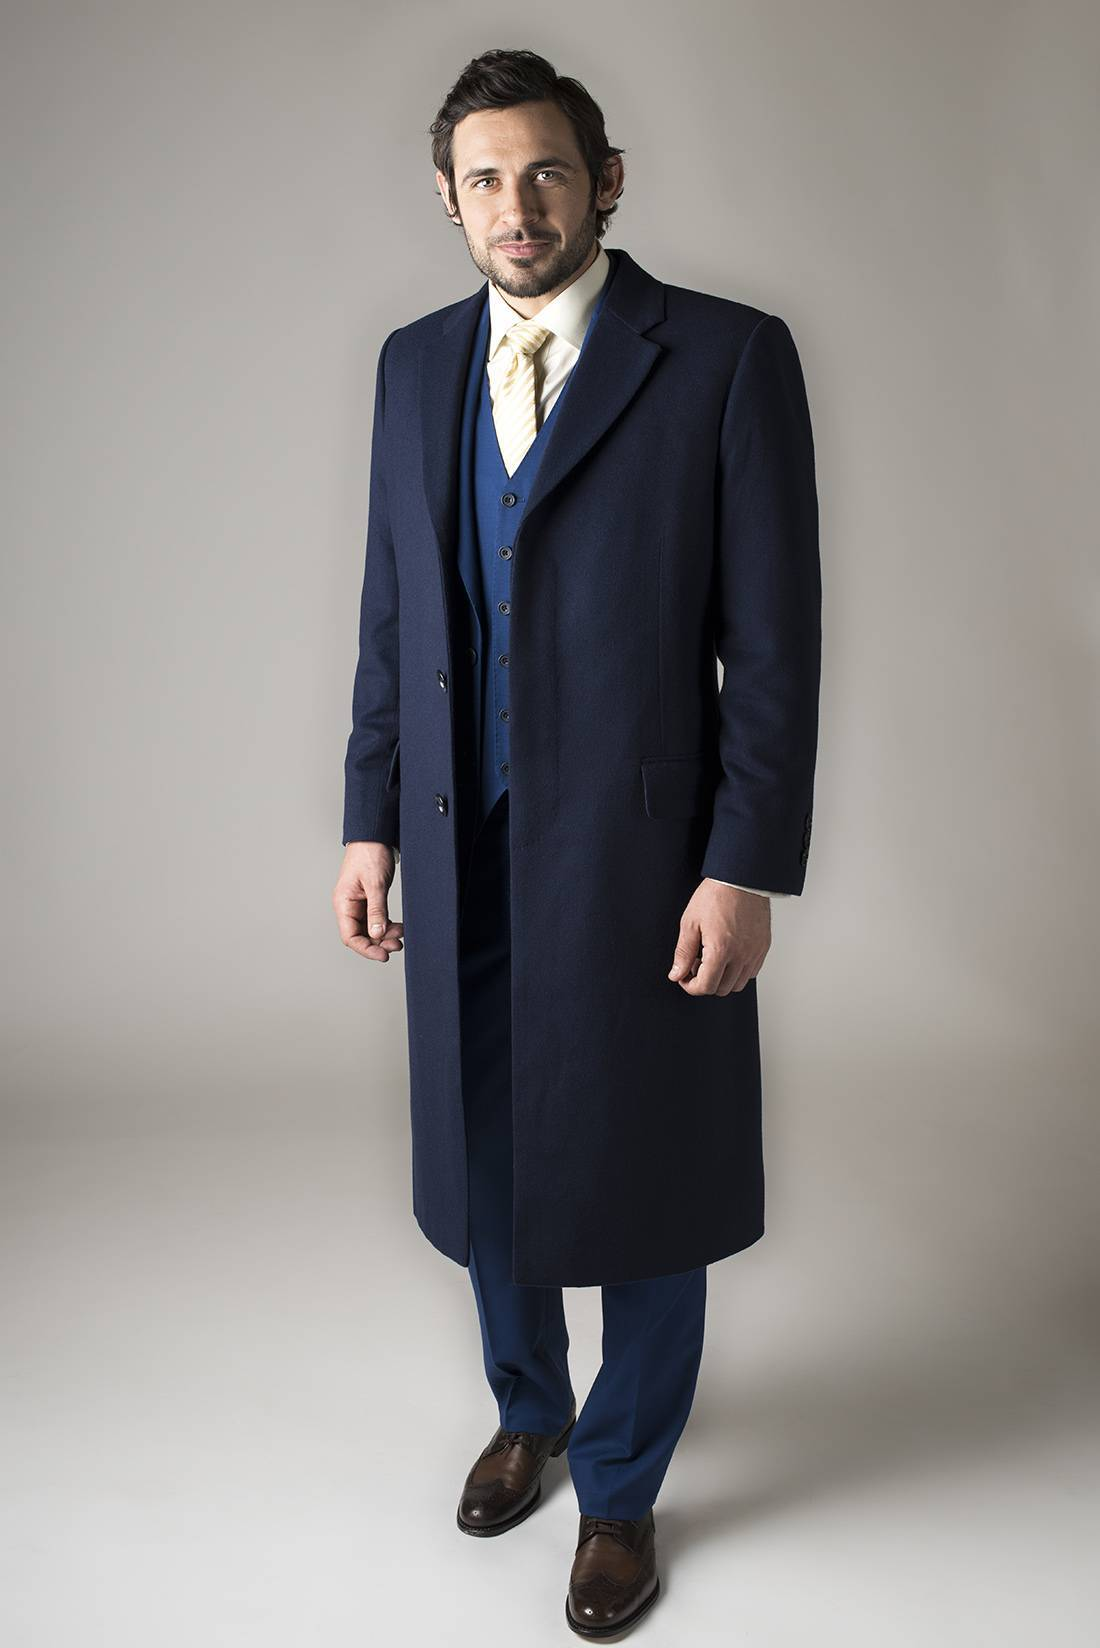 Handmade Cashmere Overcoats - The Outerwear You Must Own